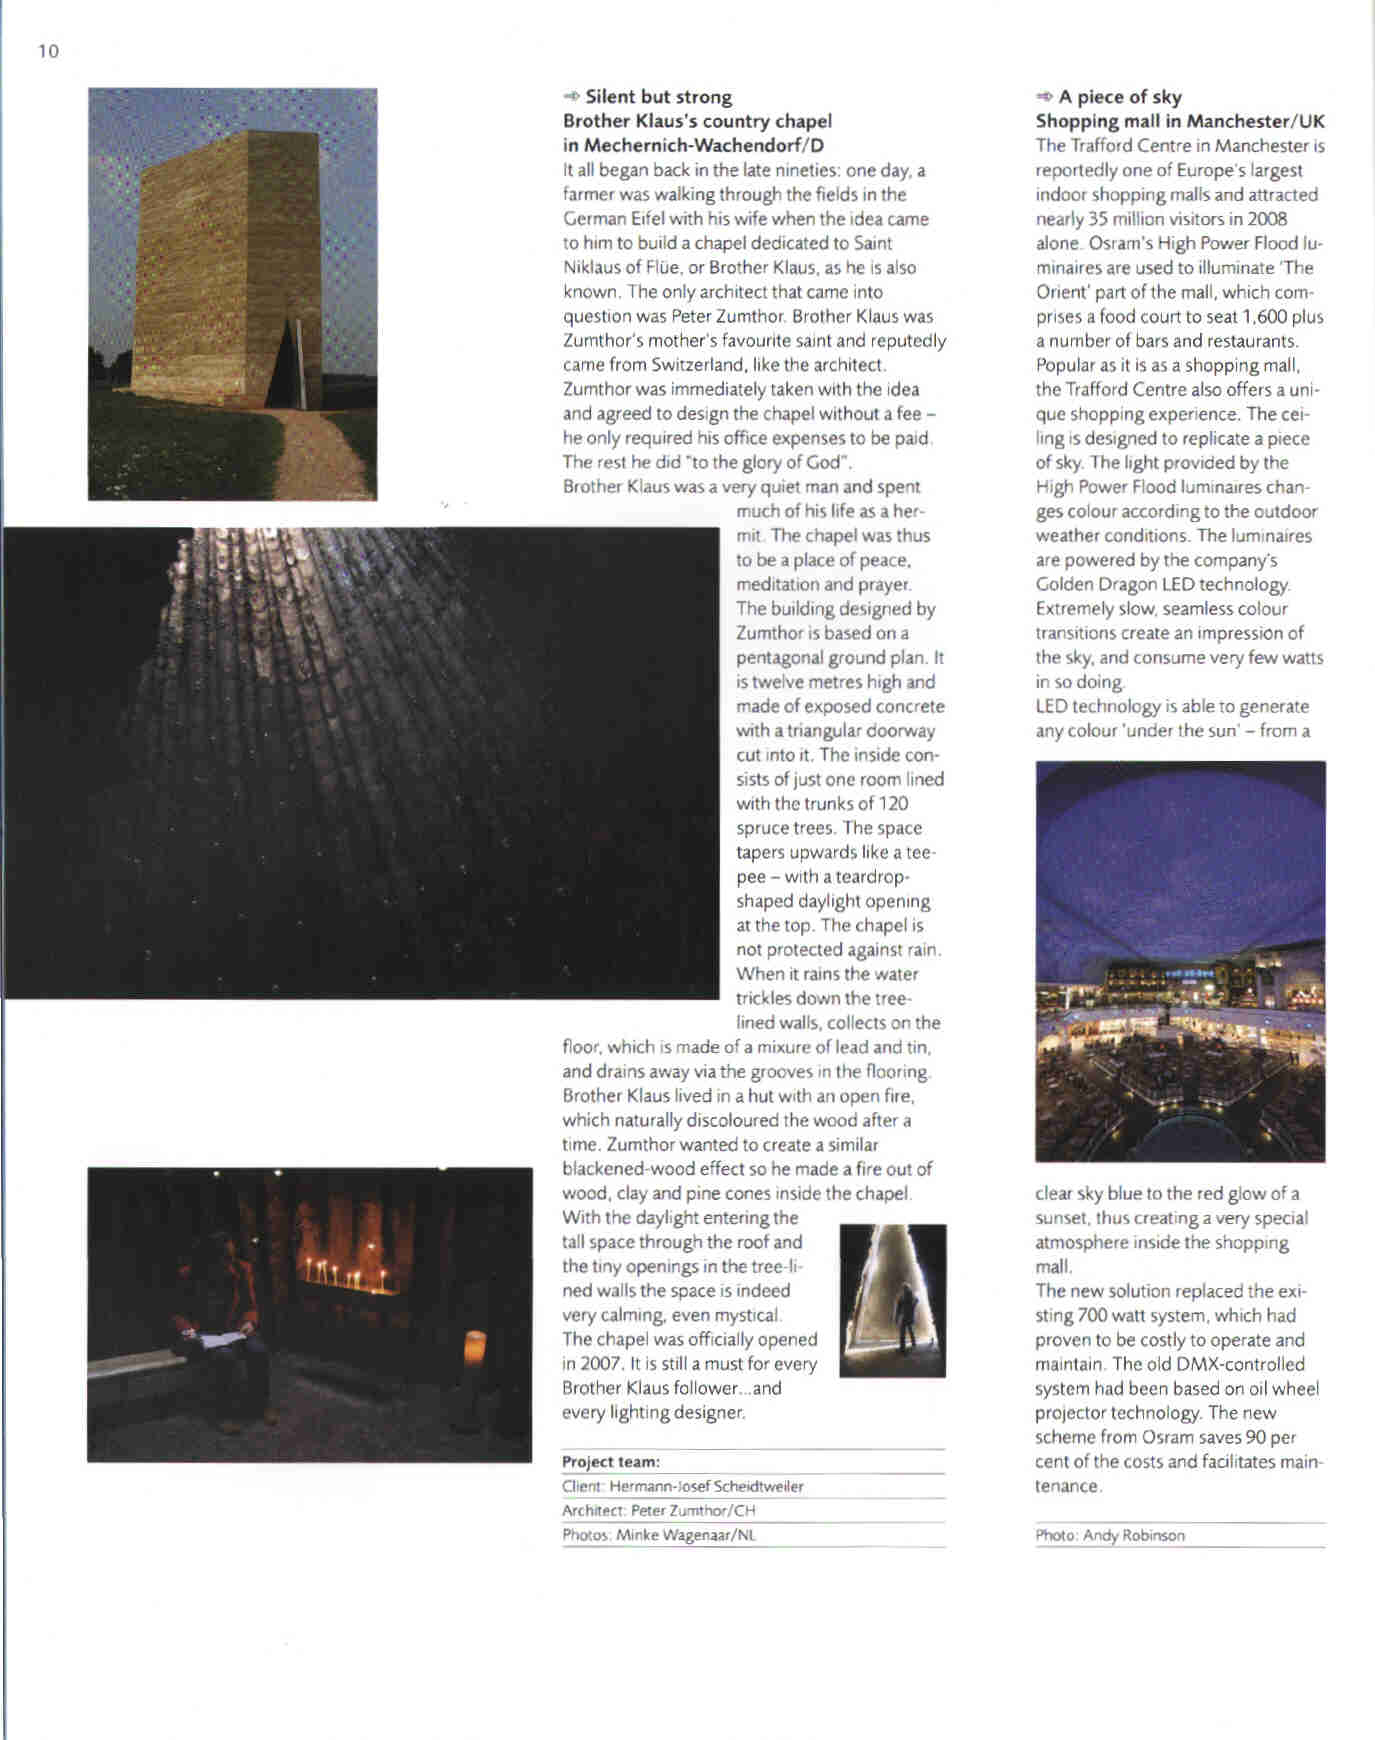 Gepubliceerd in Professional Lighting Design, no. 67 juli/aug 2009, p. 10